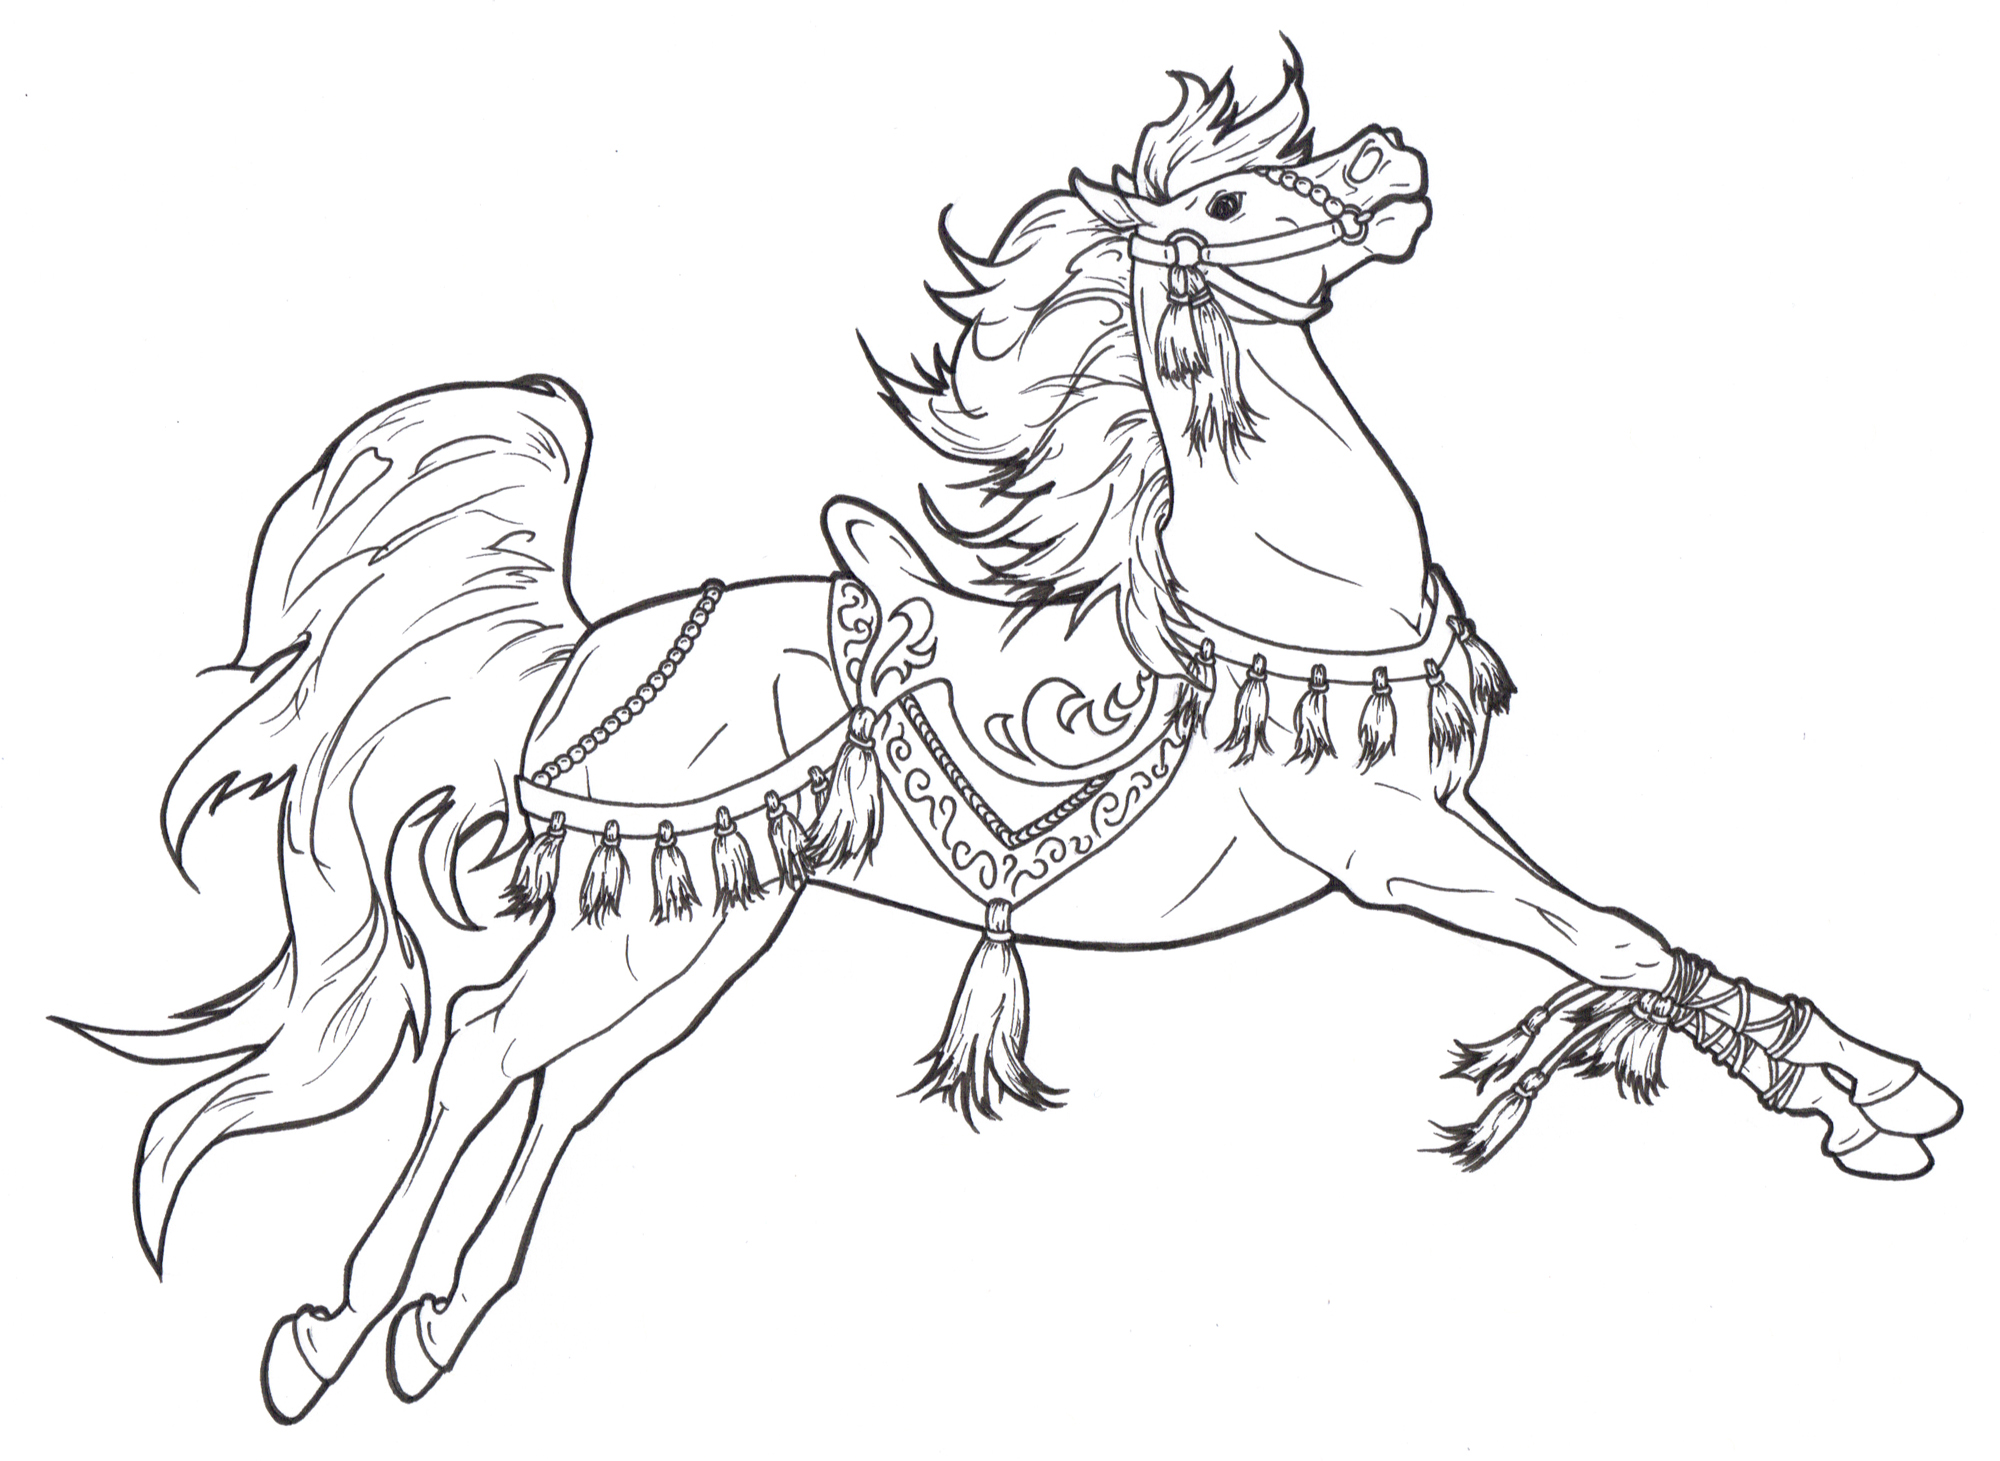 coloring pages carousel horse - photo#14